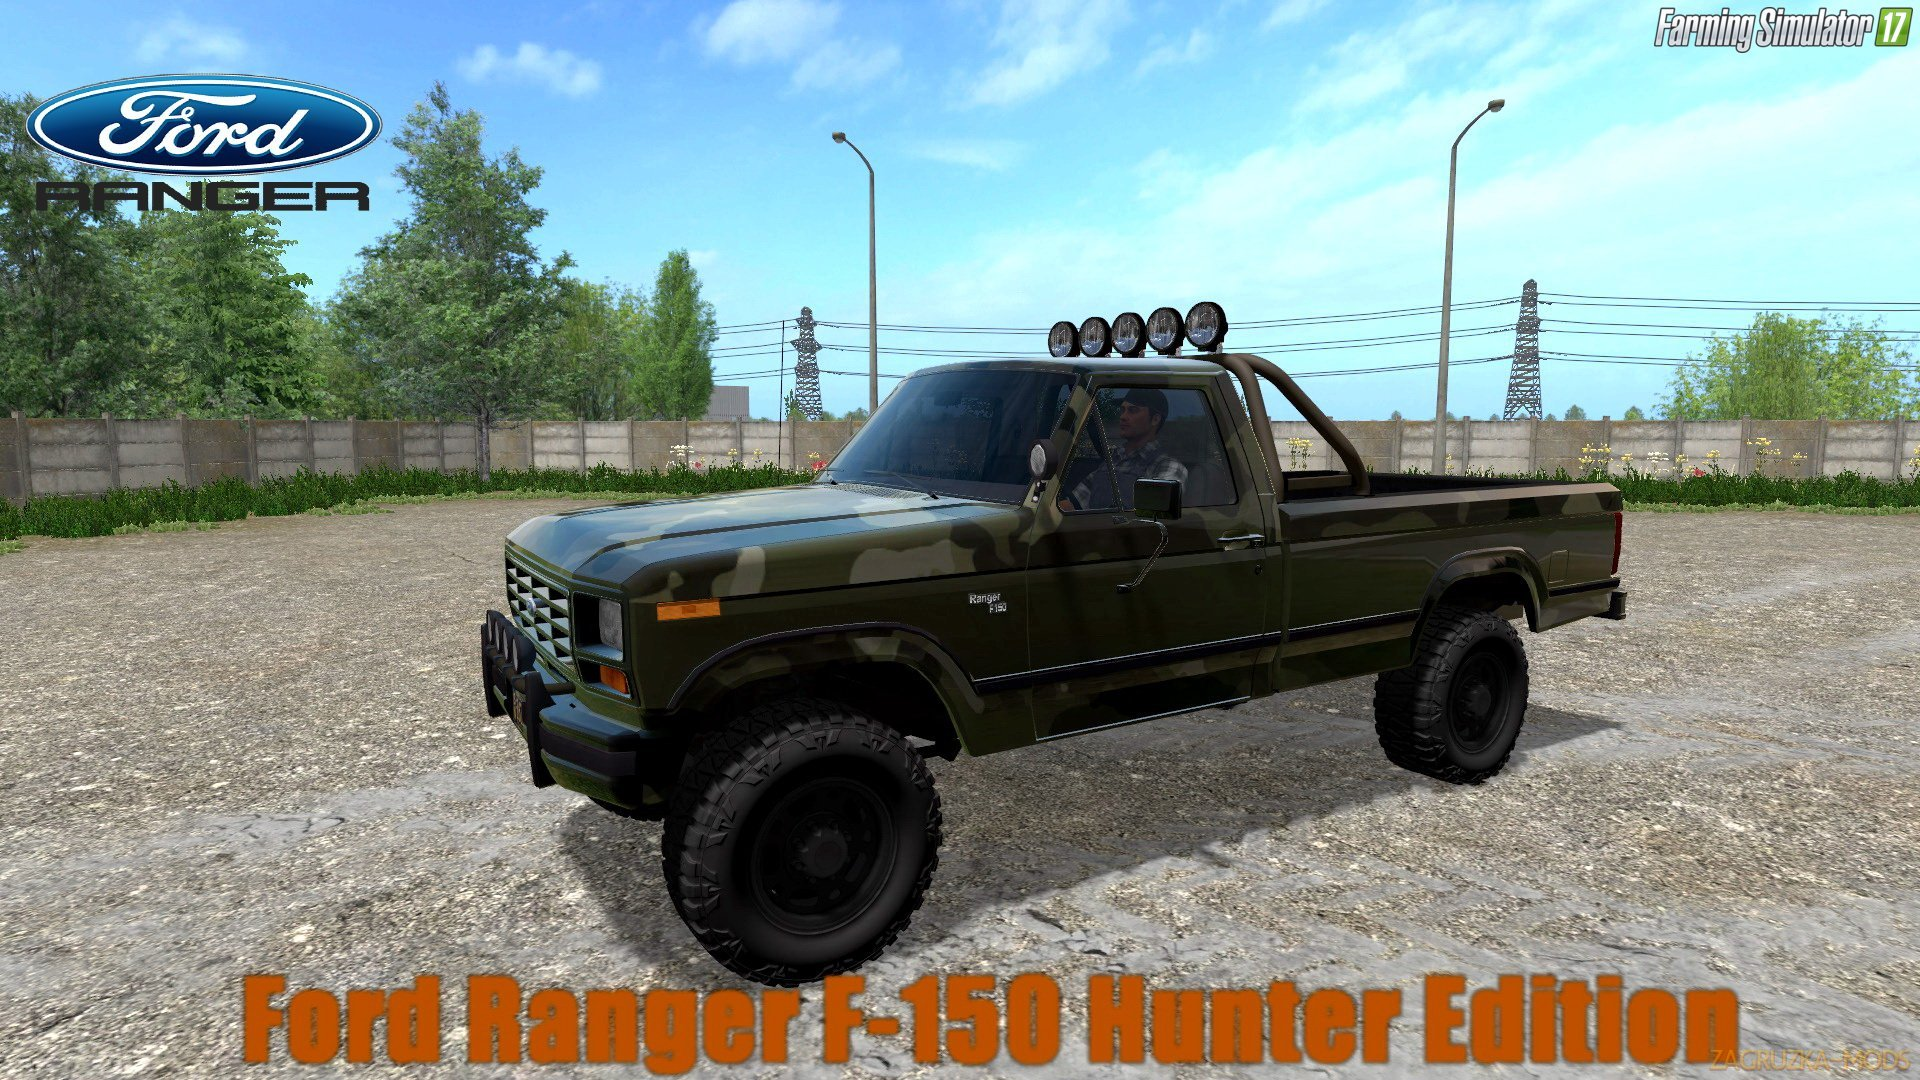 Ford Ranger F-150 Hunter Edition v1.0 for FS 17